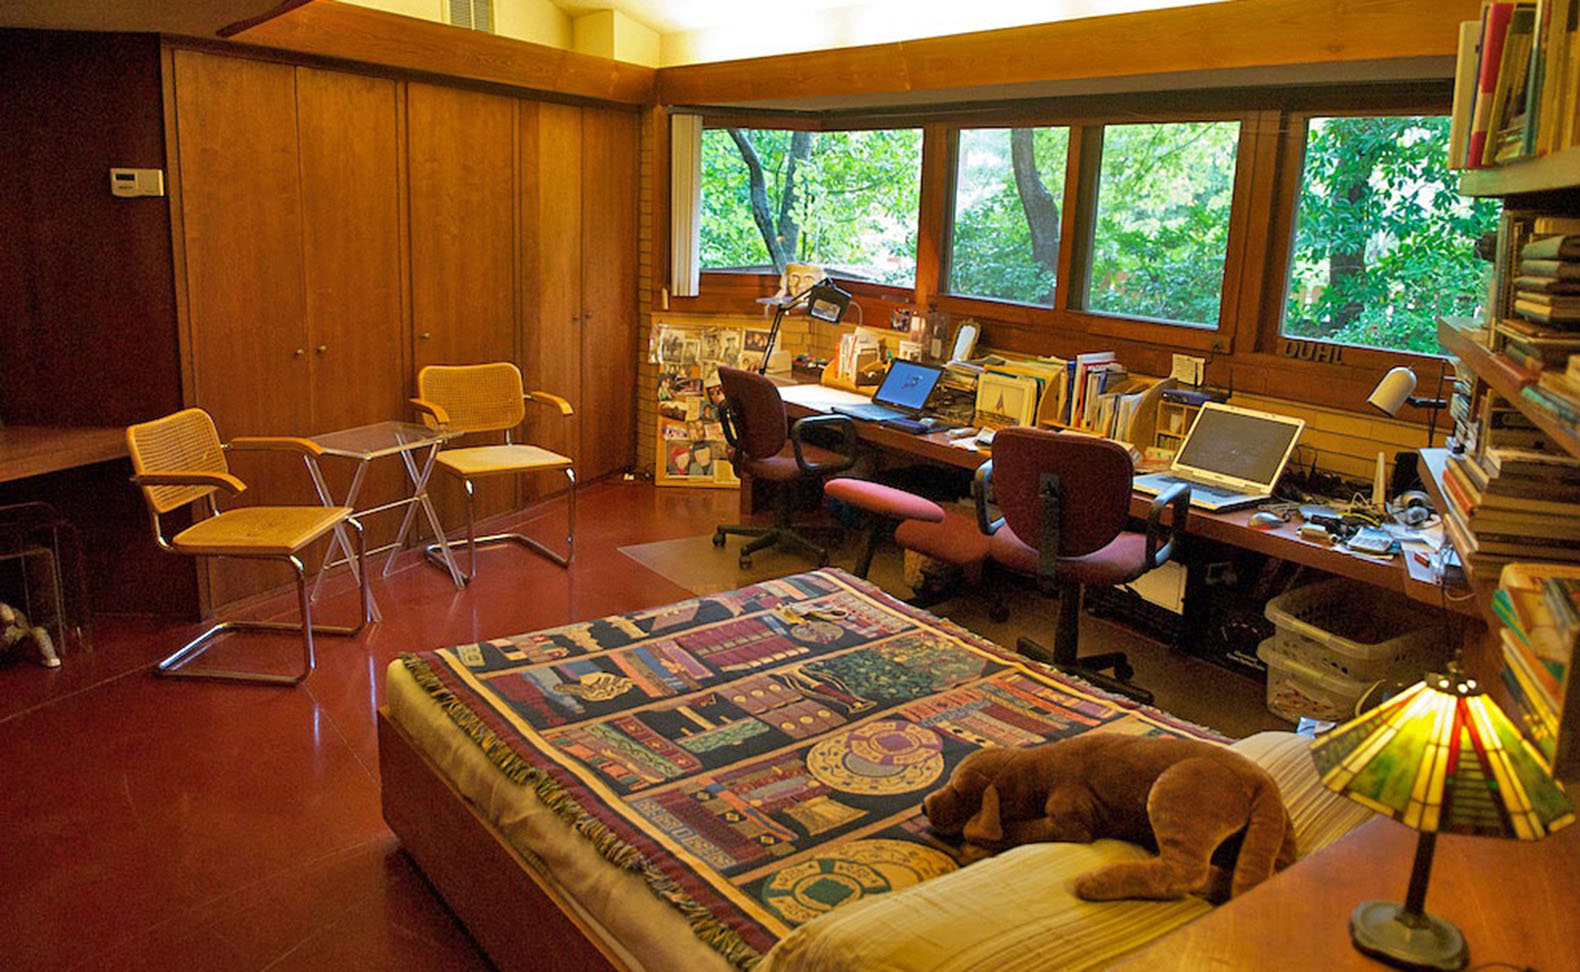 Frank lloyd wright beach house listed on airbnb for under for Rent house for a night